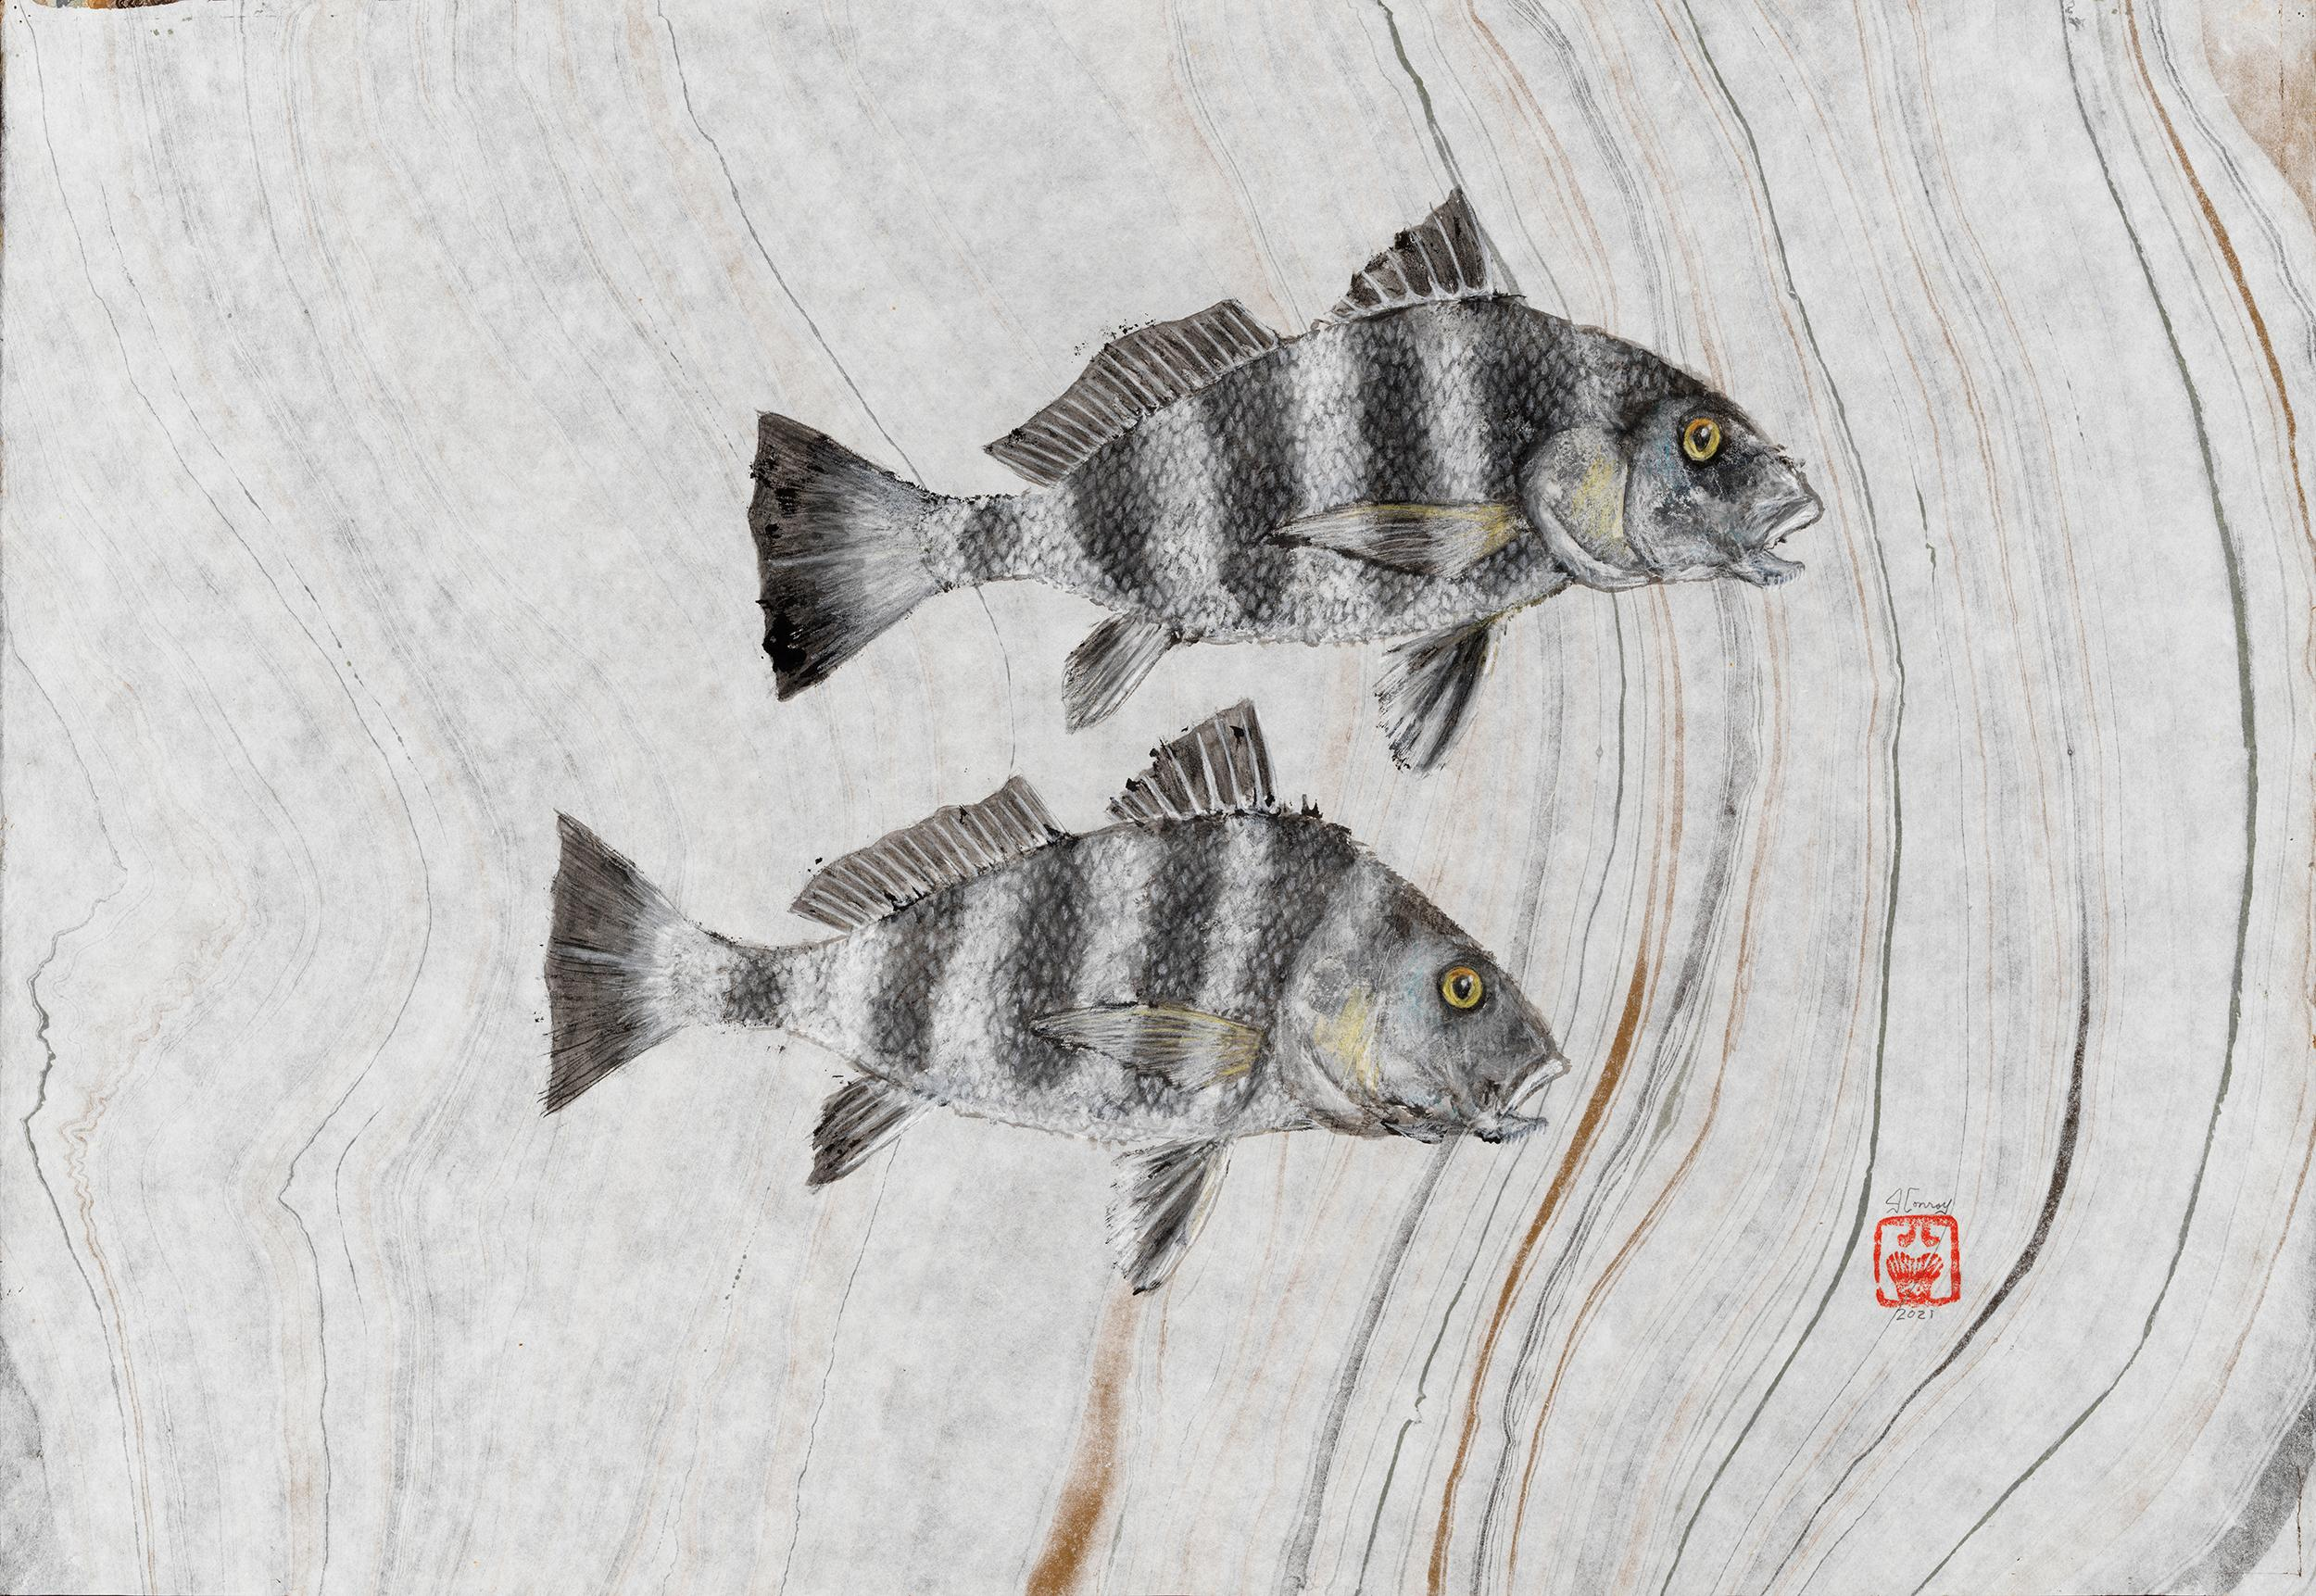 Two Drums -Japanese Style Gyotaku Painting on Mulberry Paper of Two Striped Fish